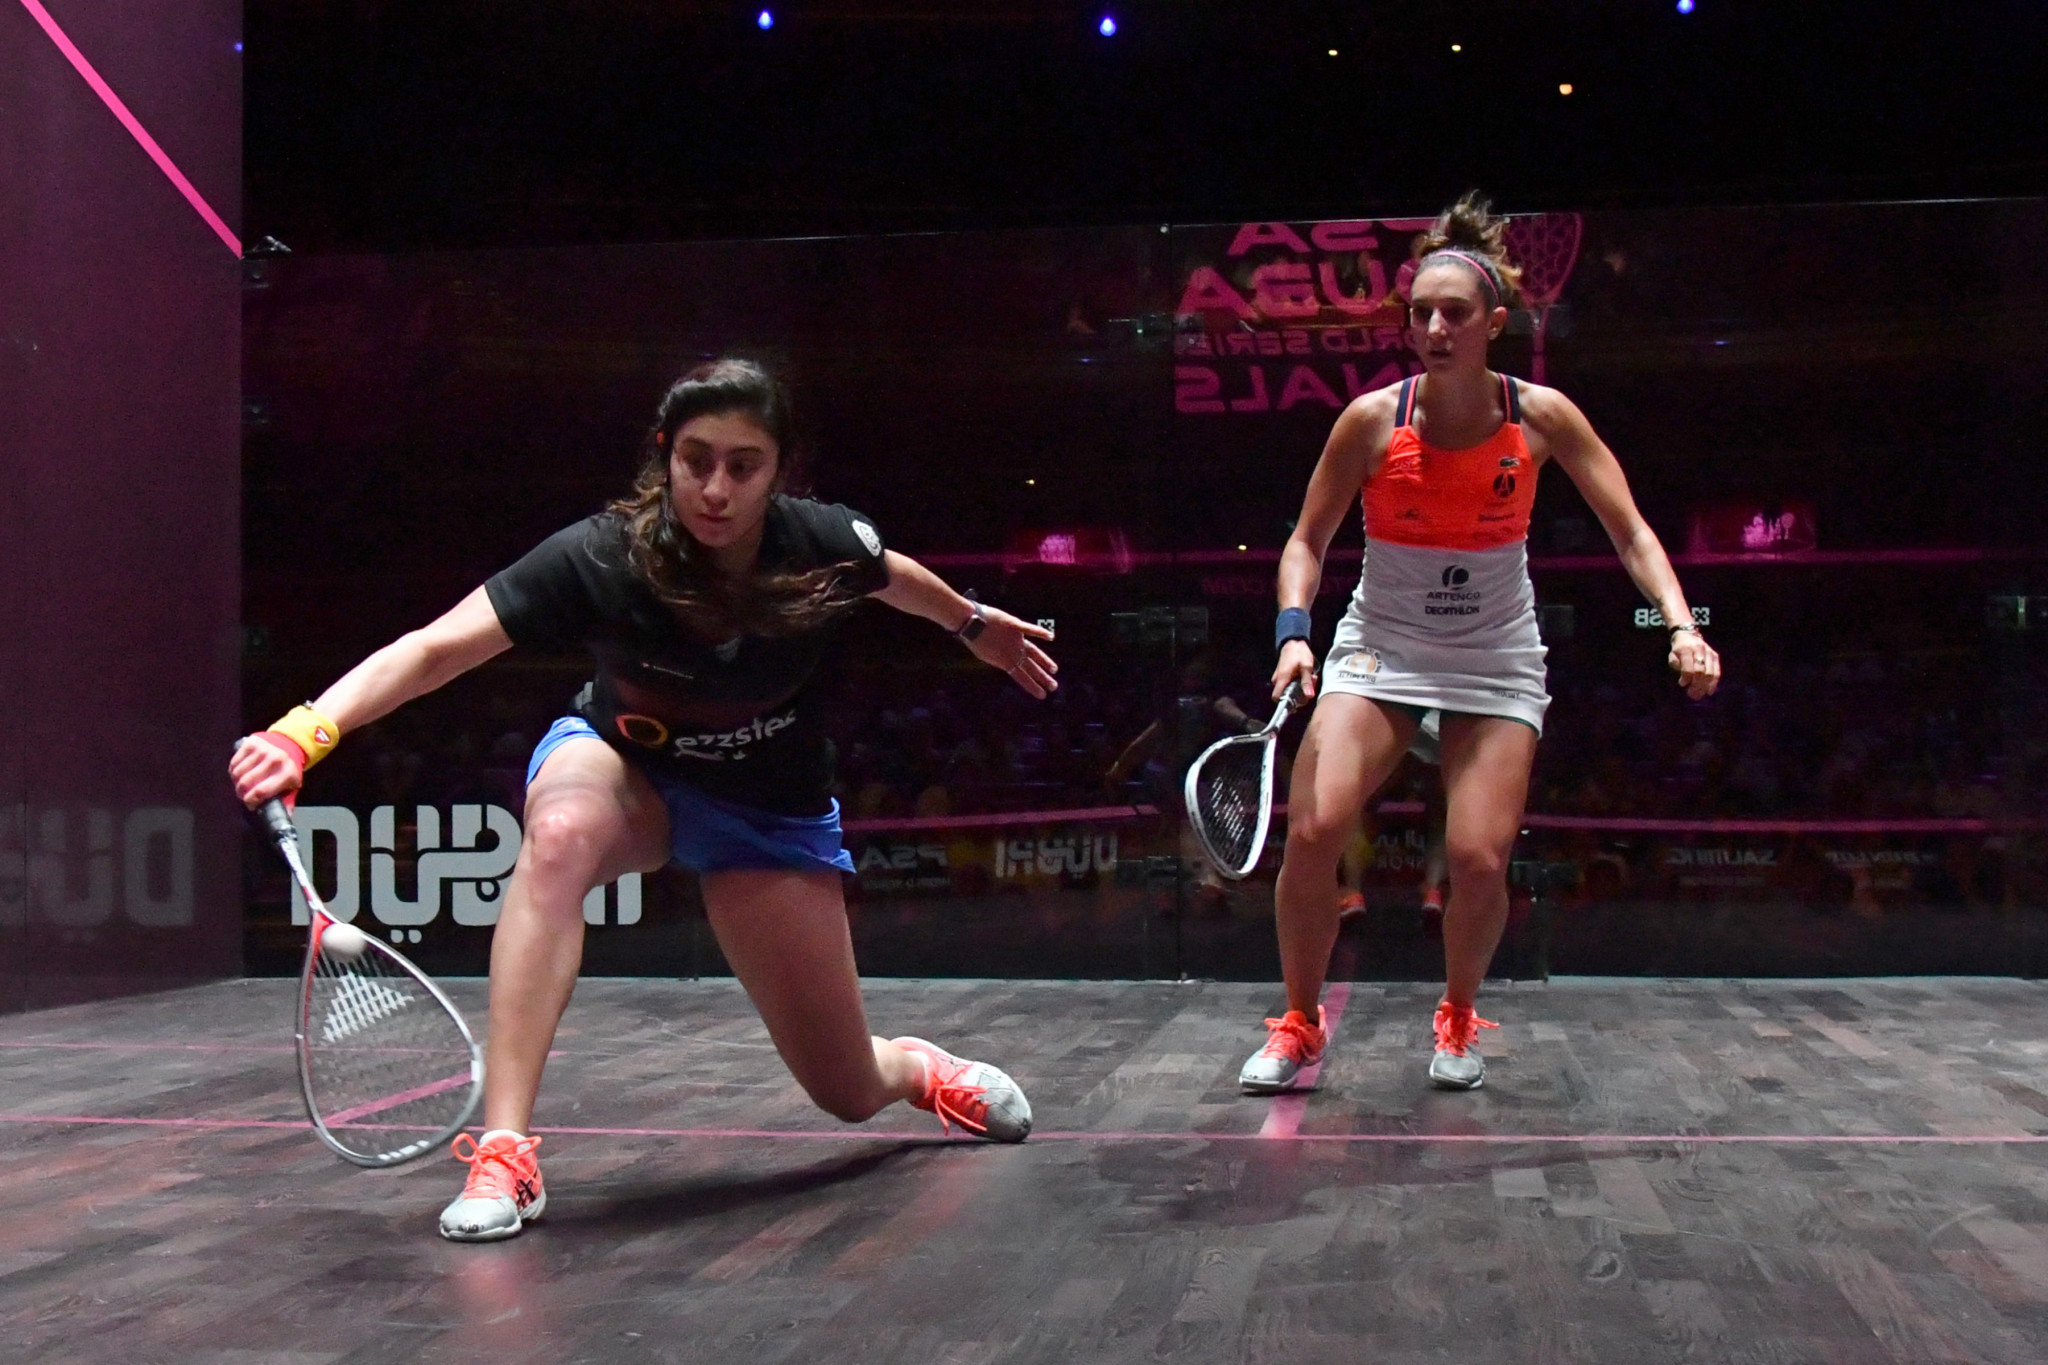 El Sherbini retains top spot in PSA women's world rankings